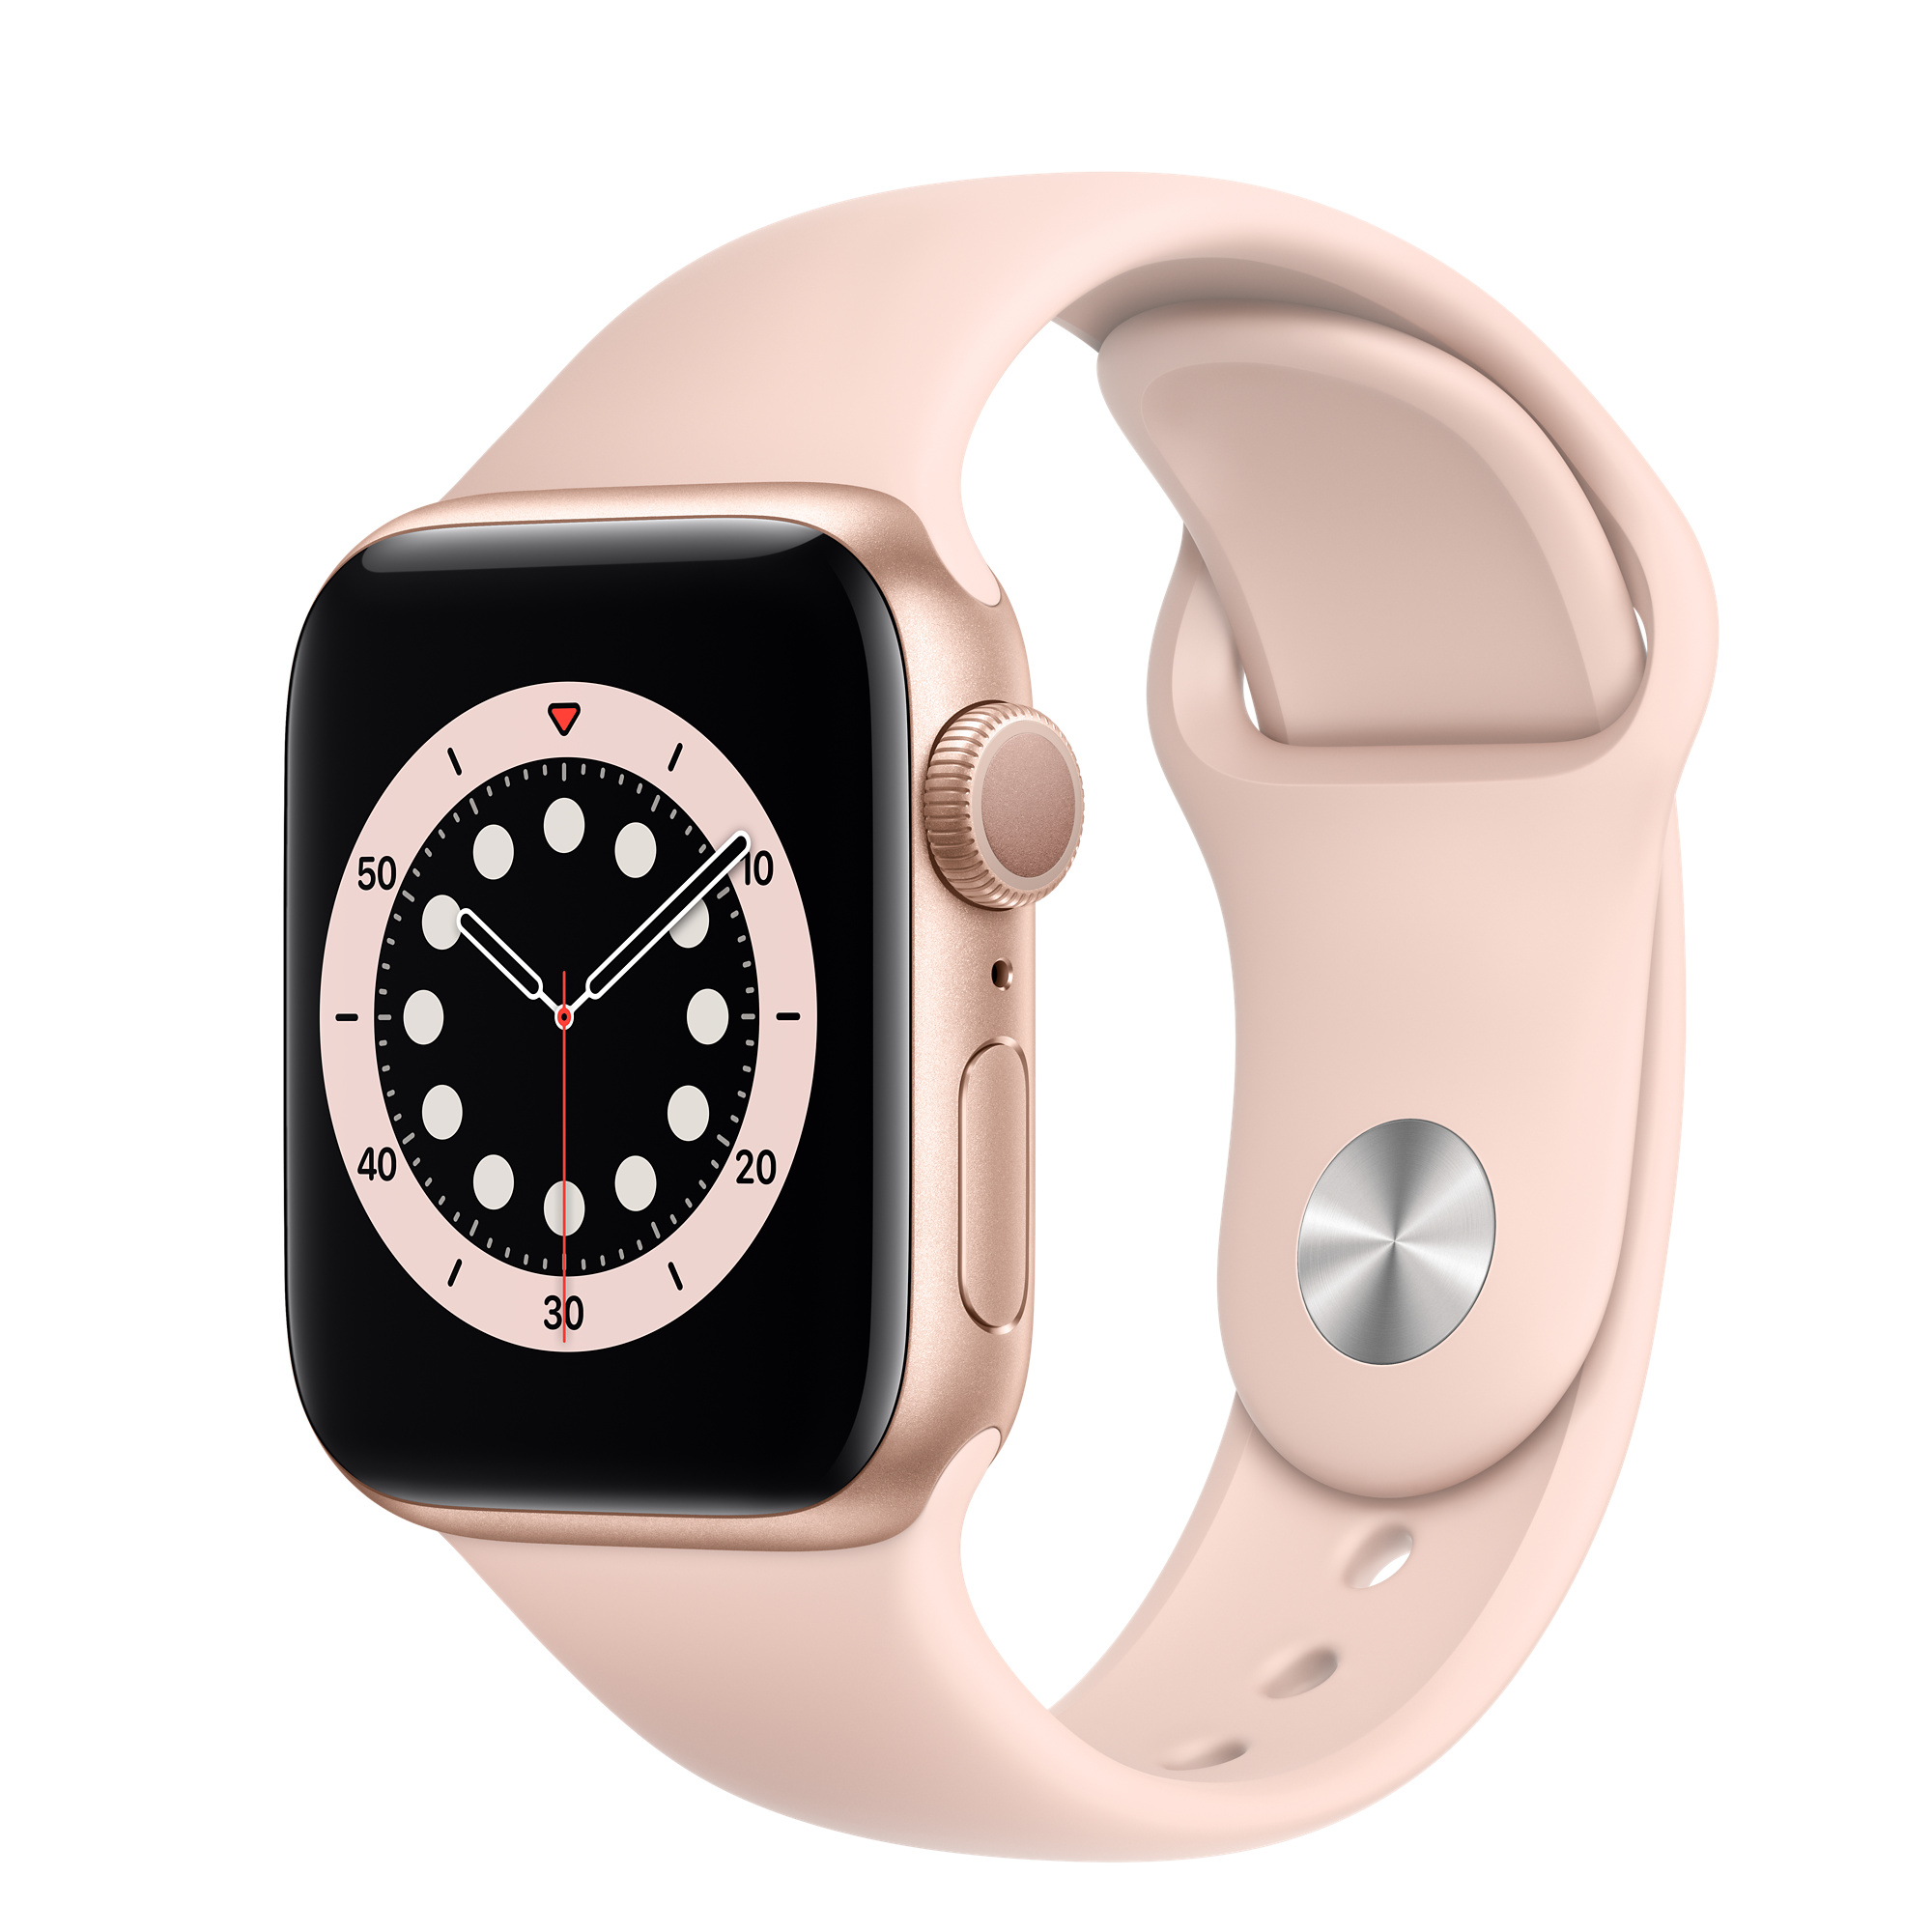 Apple Watch Series 6 Gps 40mm Gold Aluminum Case With Pink Sand Sport Band Regular Apple